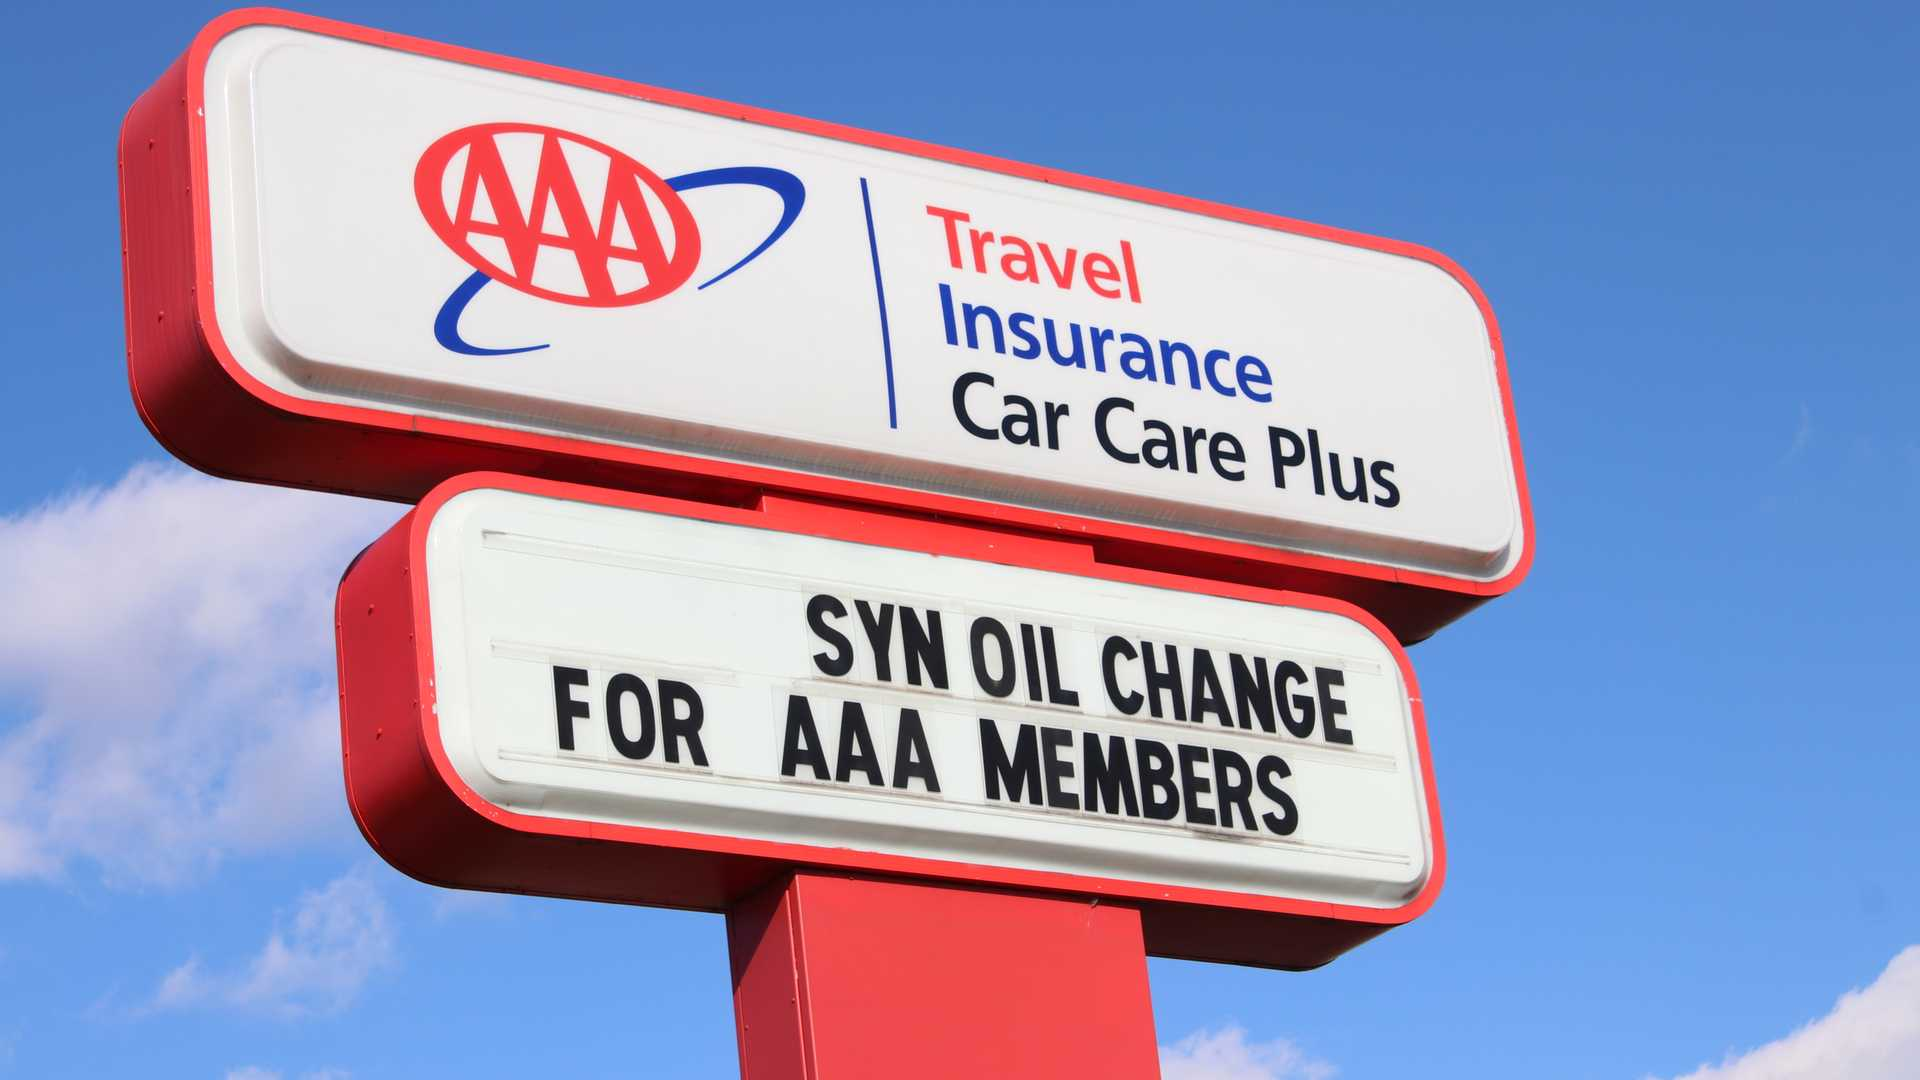 Aaa Insurance Reviews >> Aaa Car Insurance Review All You Ever Wanted To Know